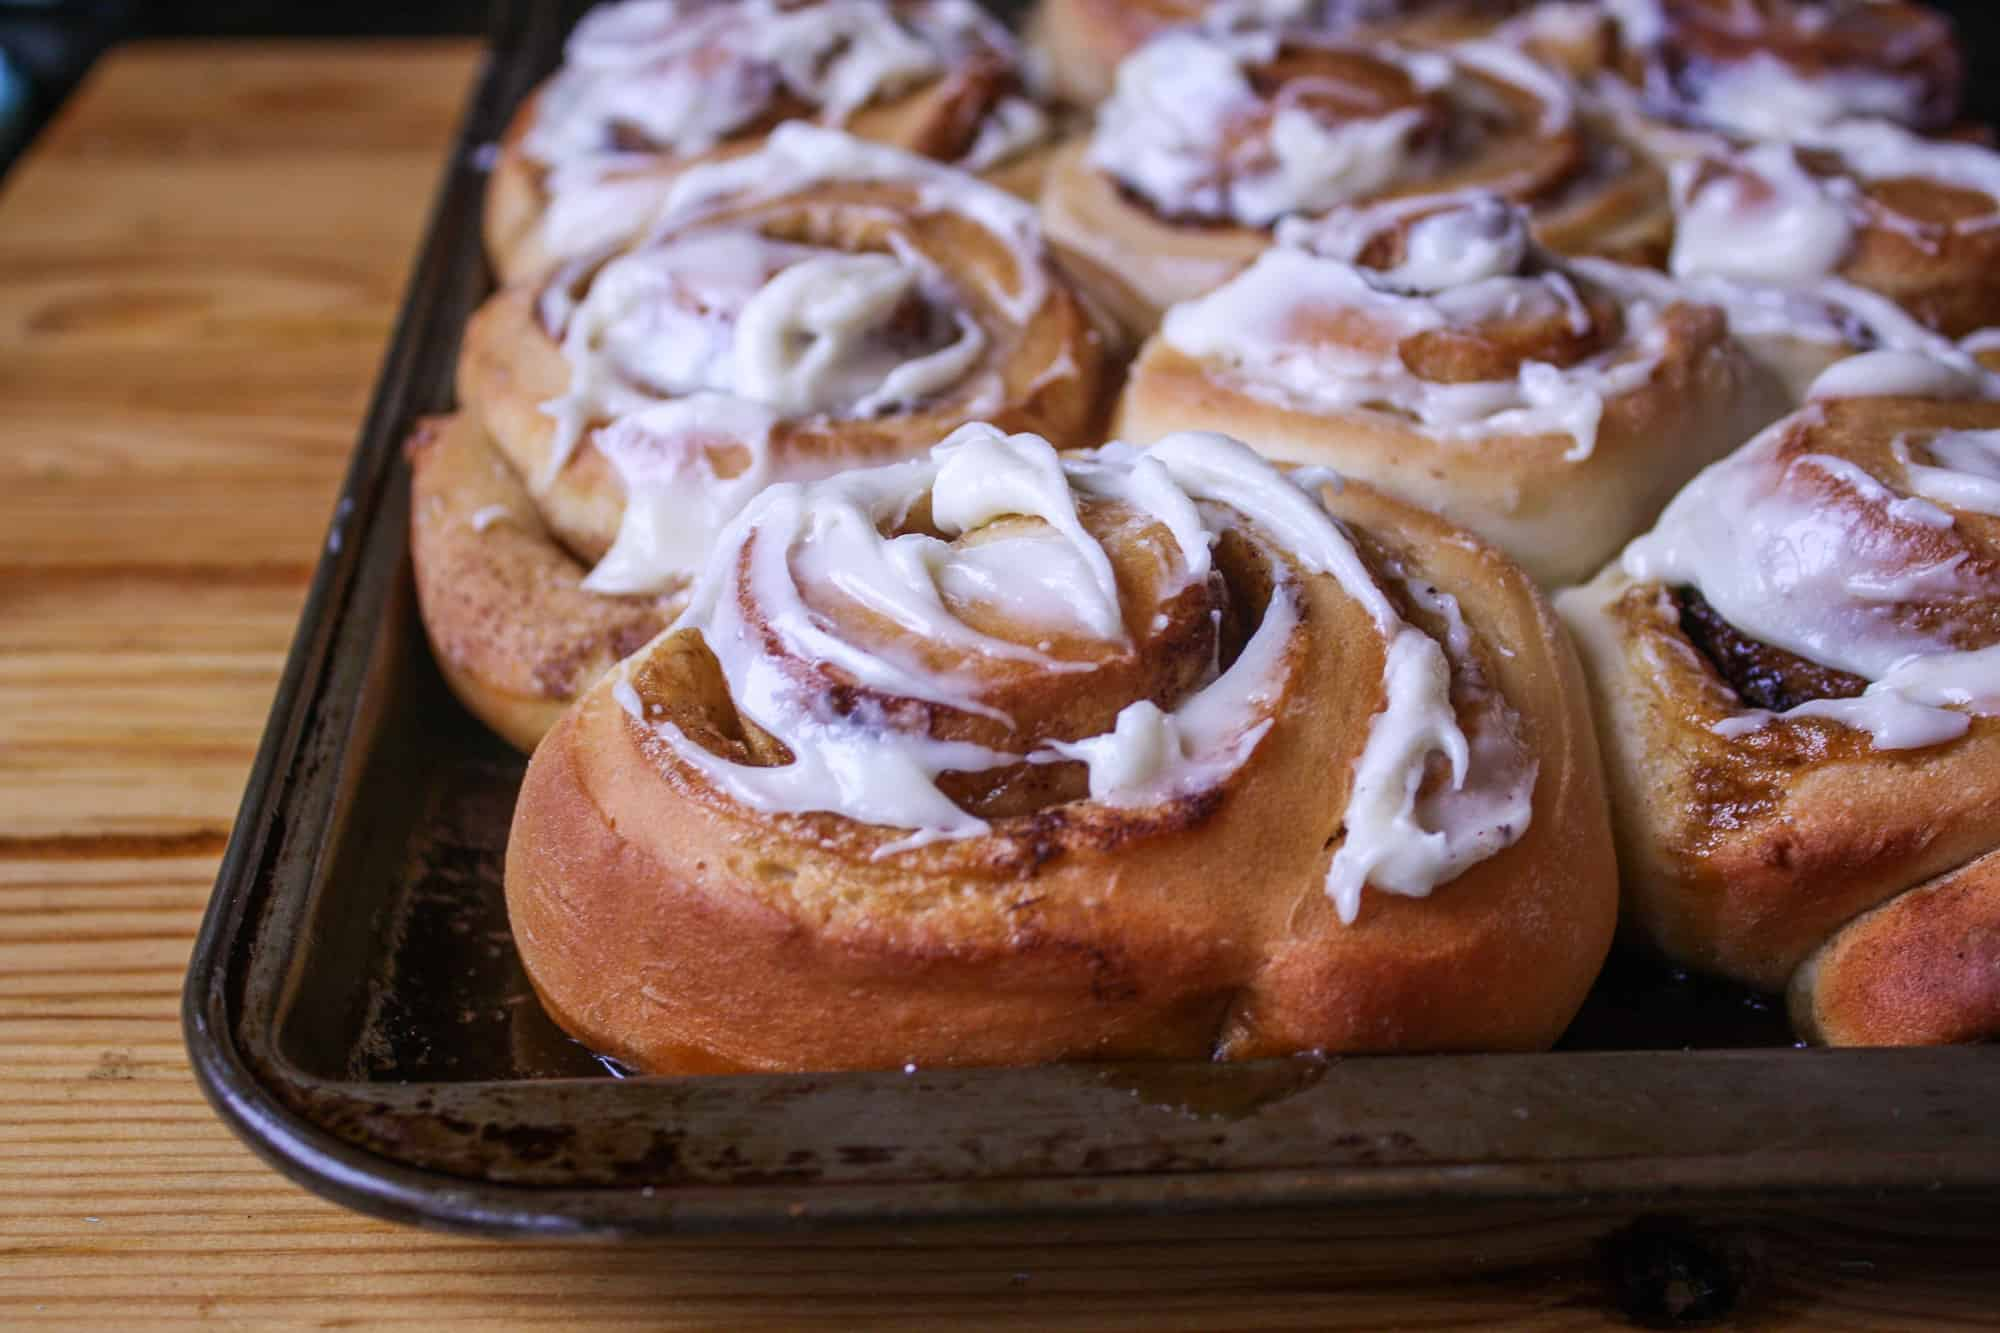 Cinnamon Buns with cream cheese frosting